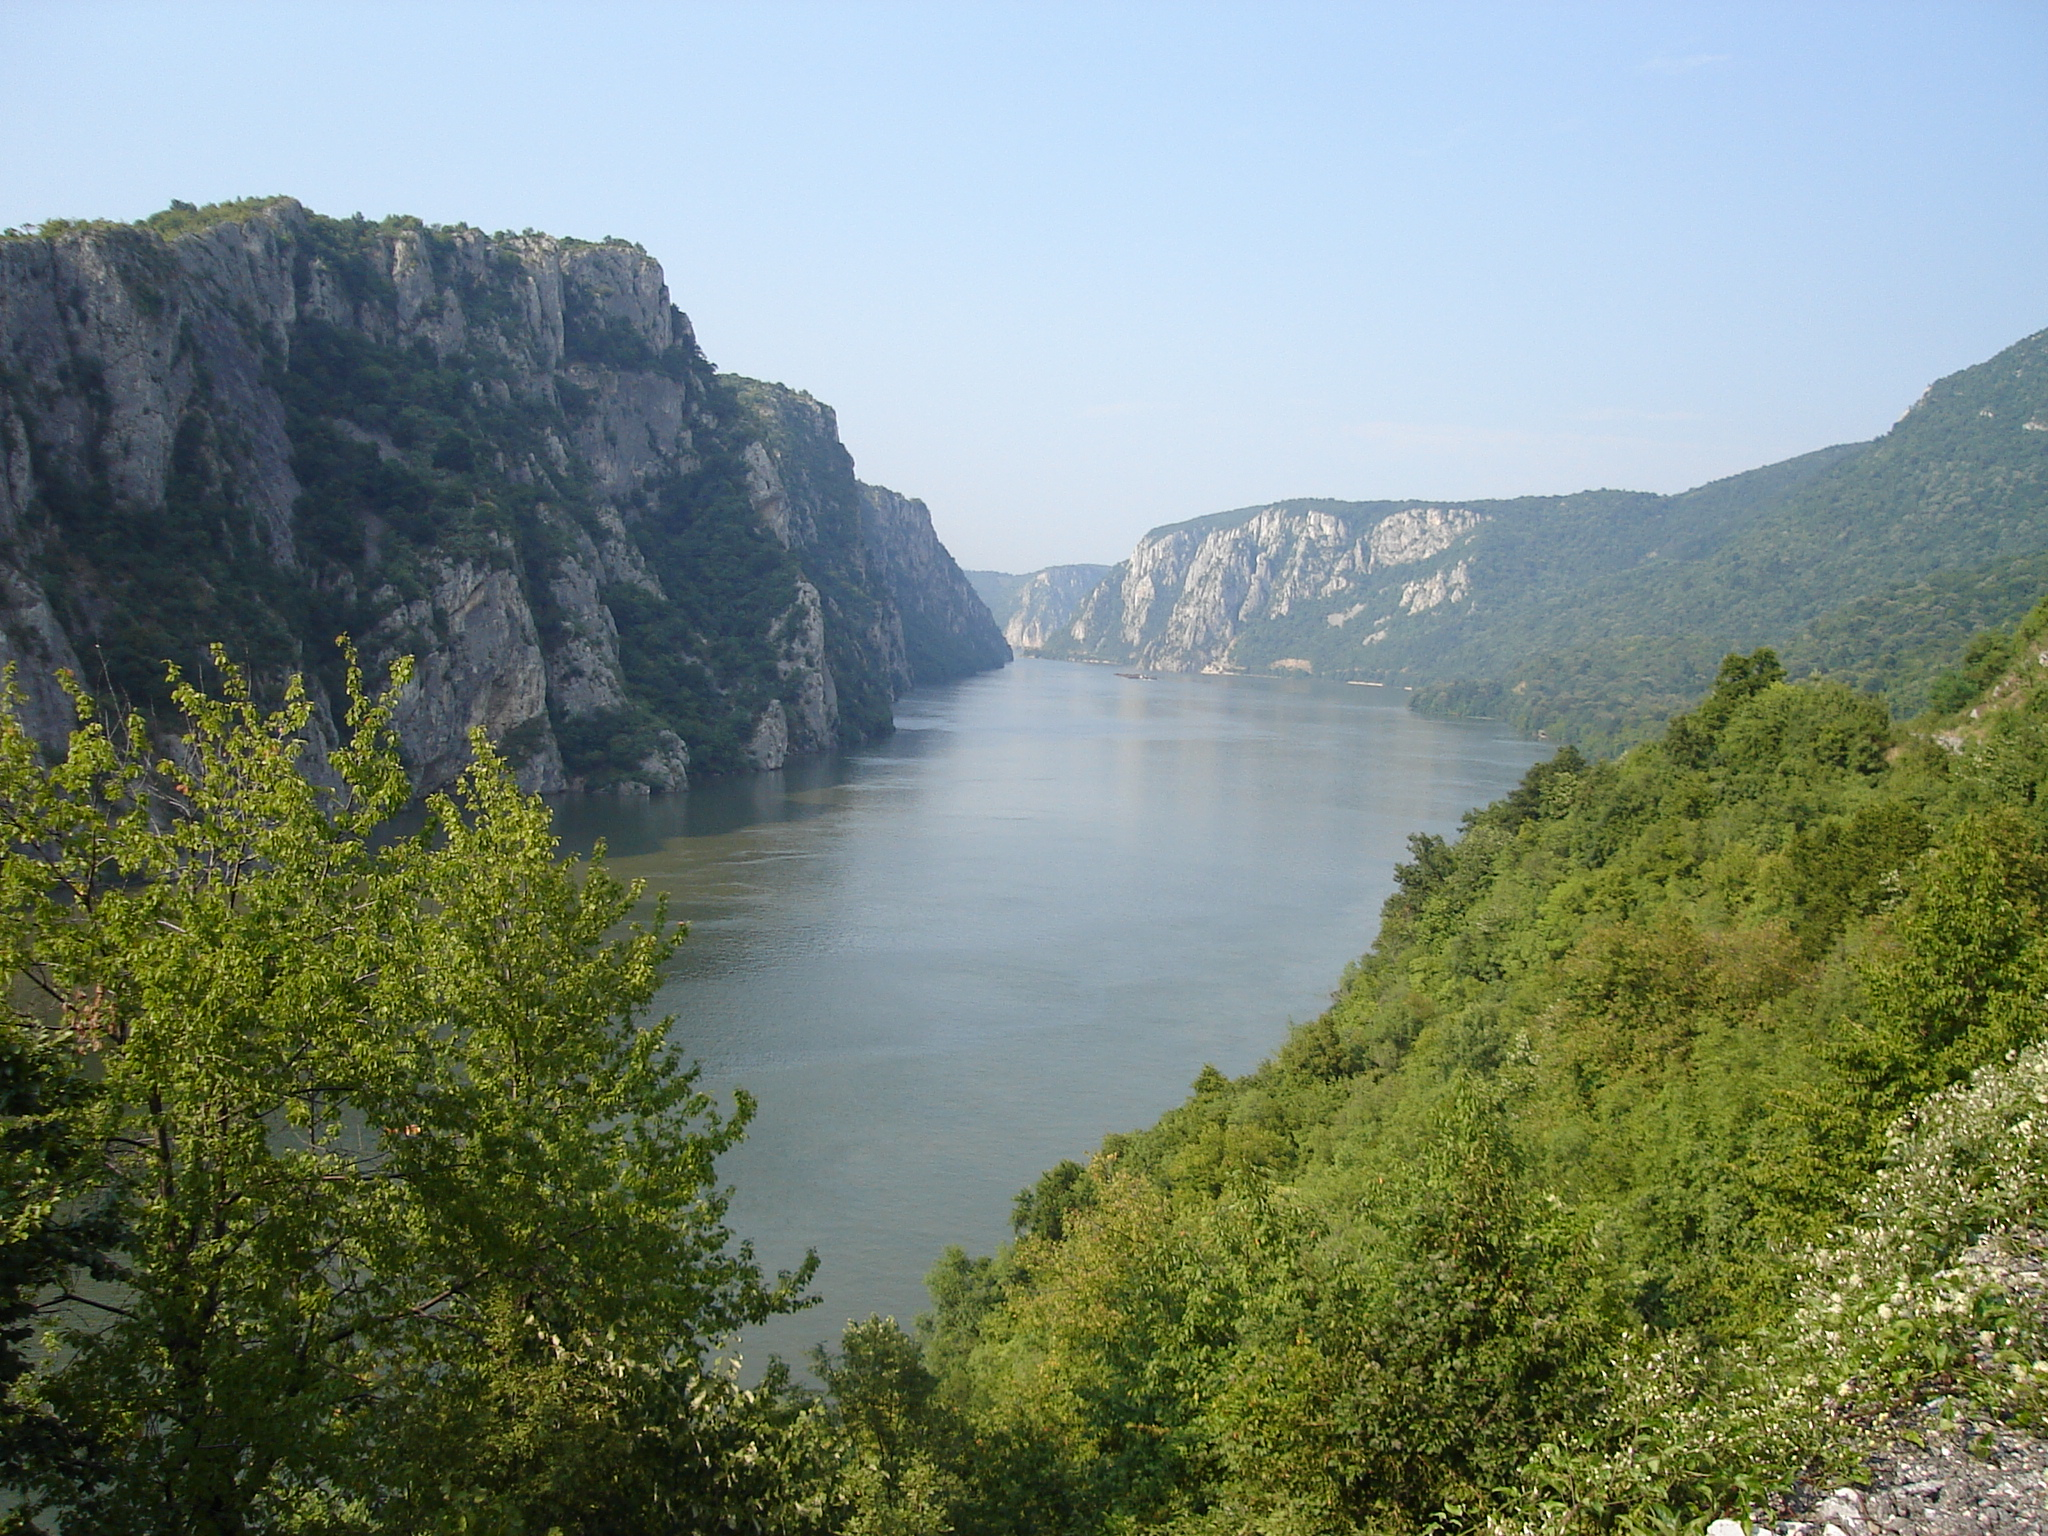 The danube is a neat river os image of